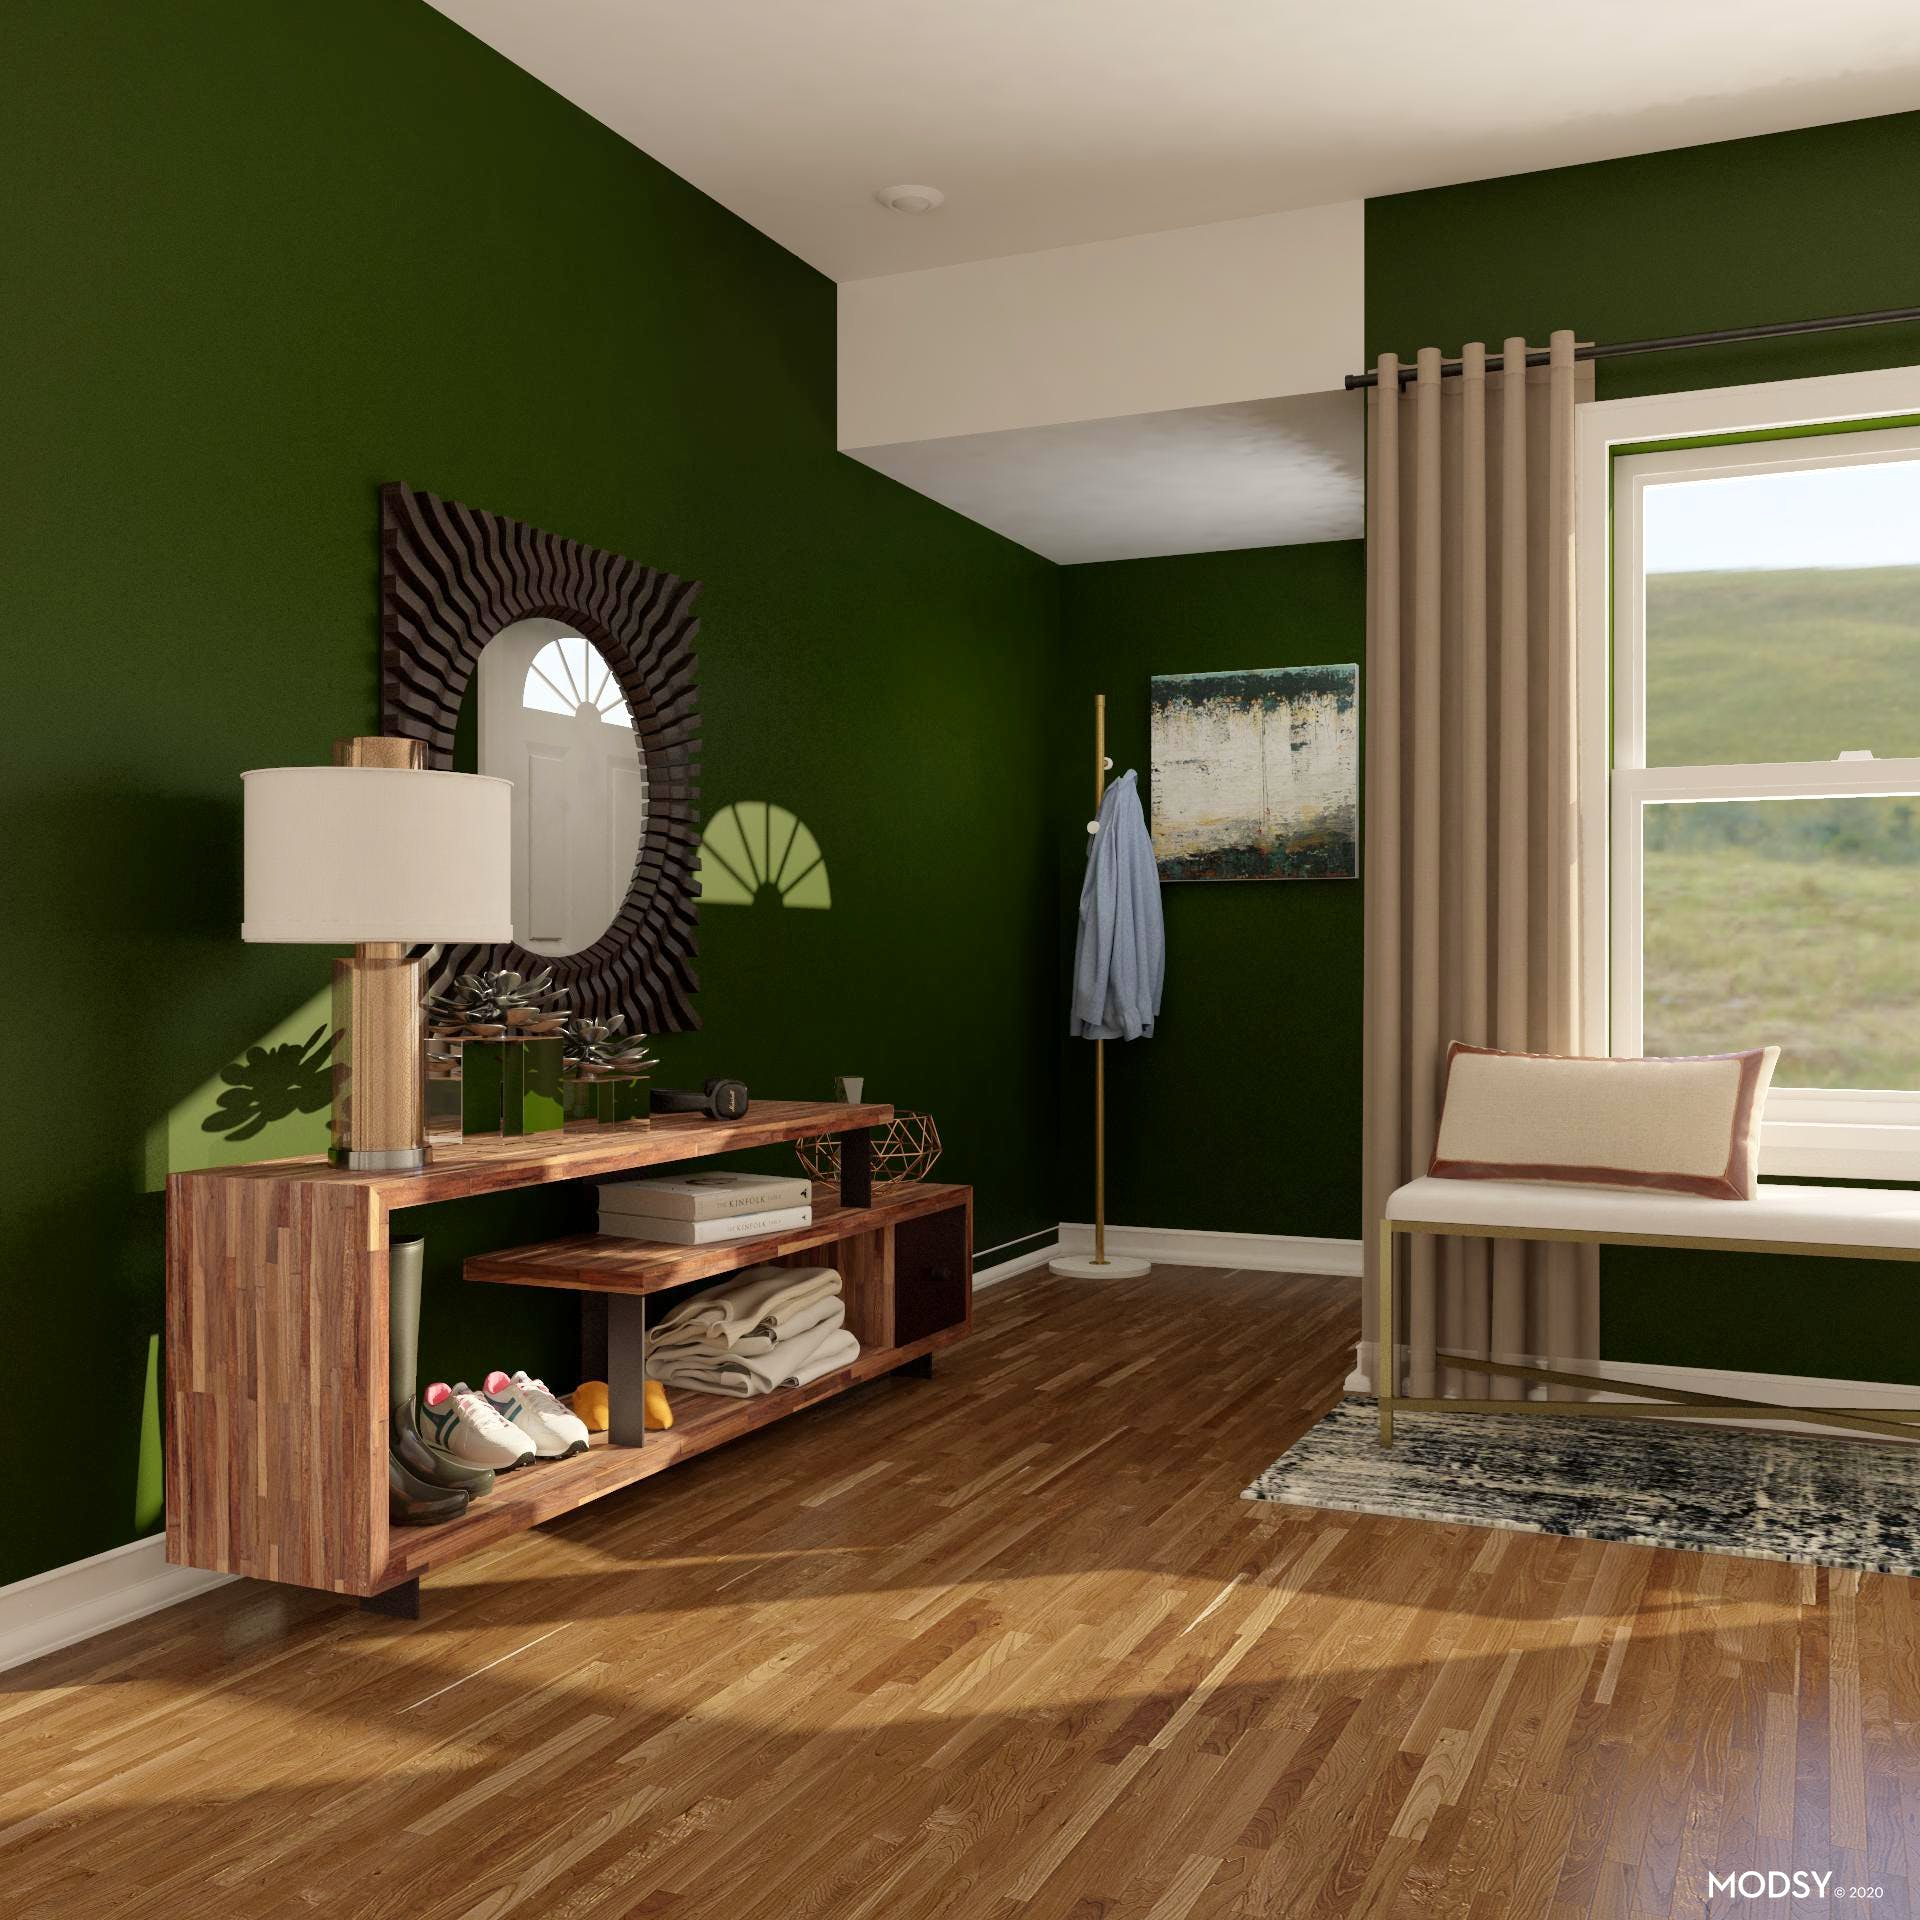 A Beautiful Modern, Bold Green Entry